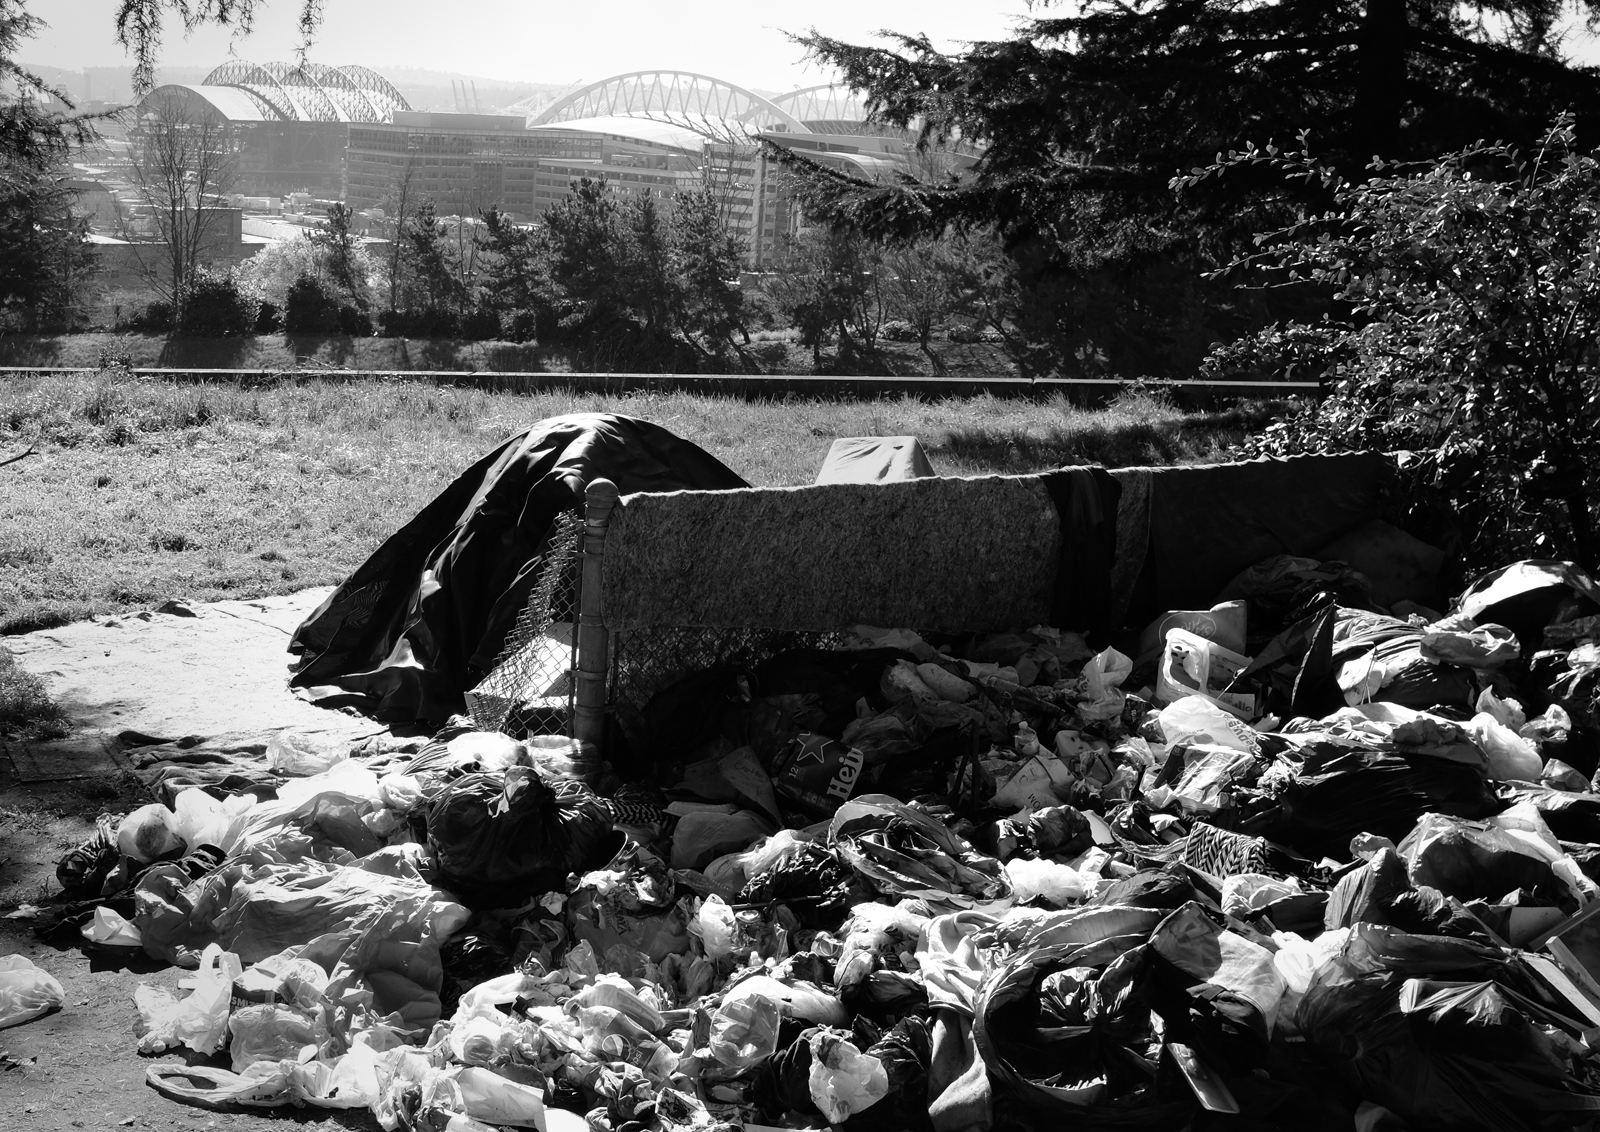 A pile of garbage in the foreground with a tent and the city skyline in the back